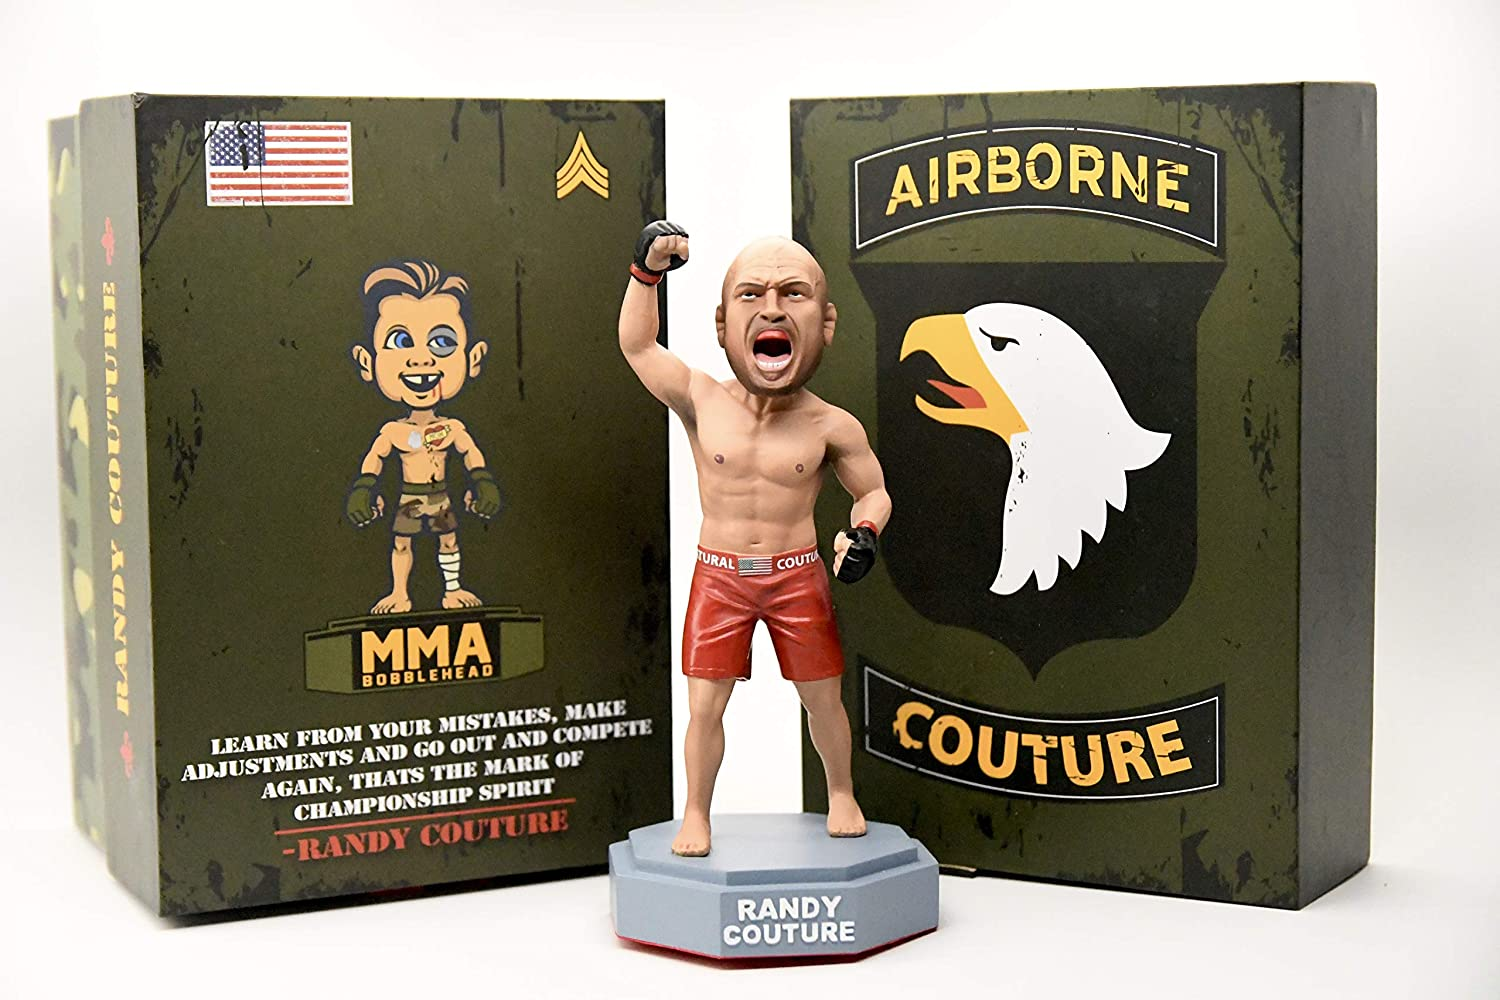 Hand Painted MMA UFC Action Figures The Iceman Fight Night Sports Memorabilia Handmade UFC Bobblehead Limited Chuck Liddell Limited Numbered